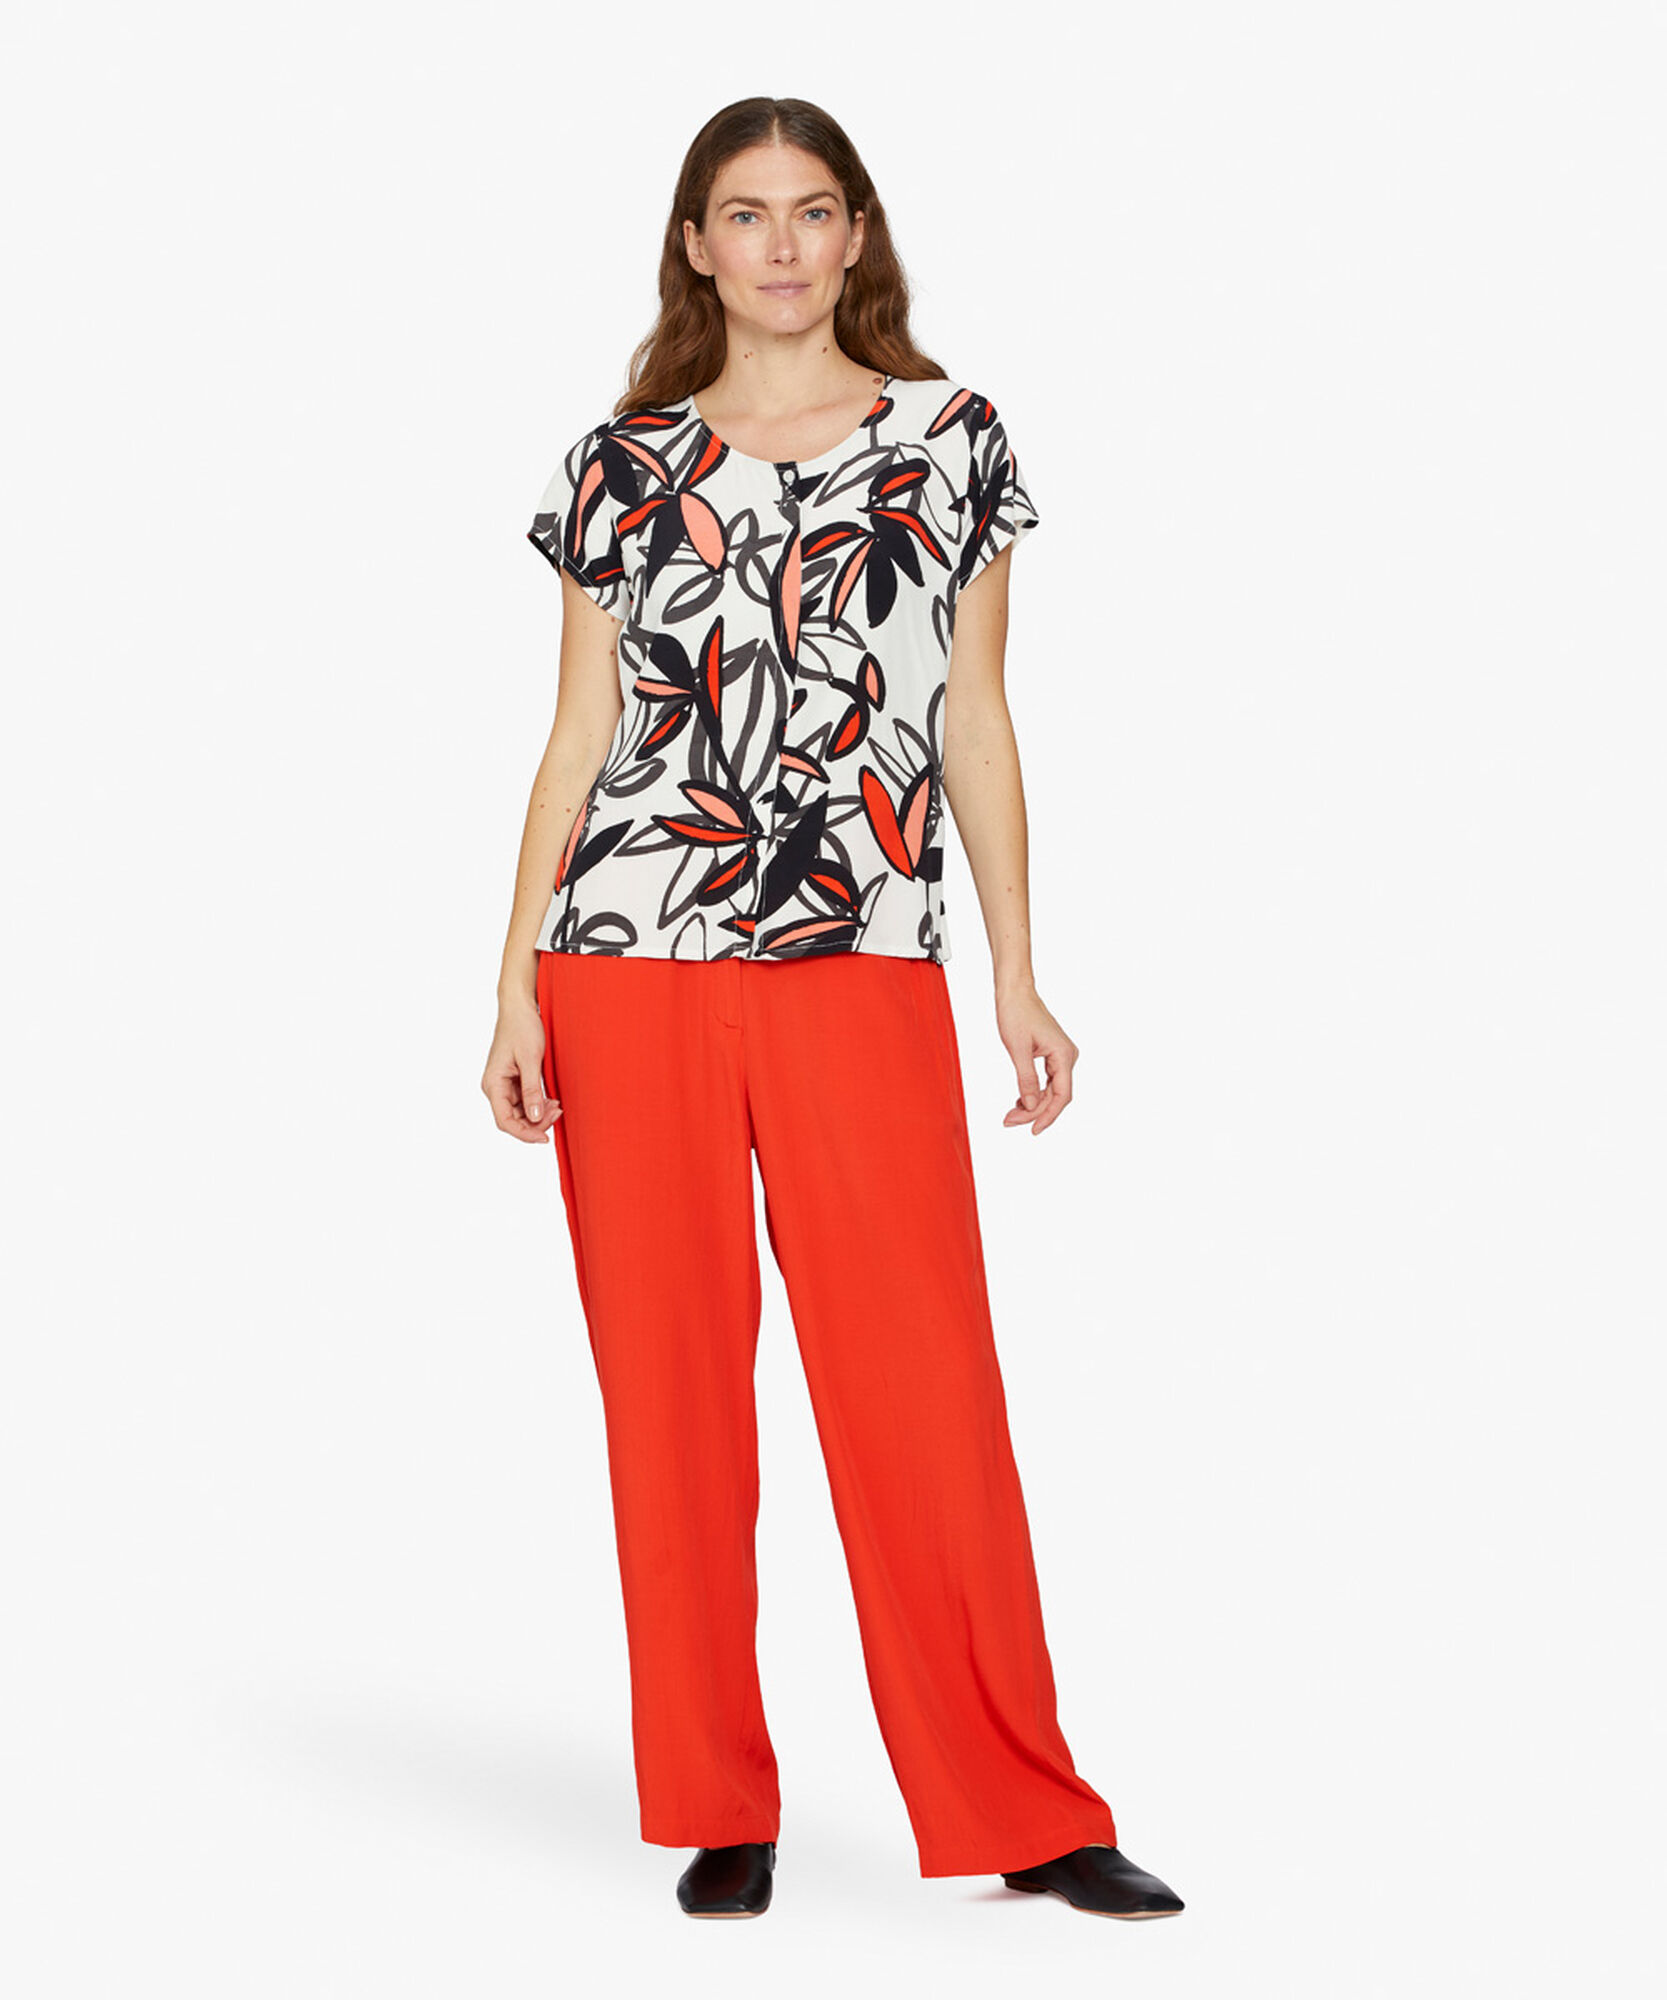 PERINUA TROUSERS, Valient Poppy, hi-res